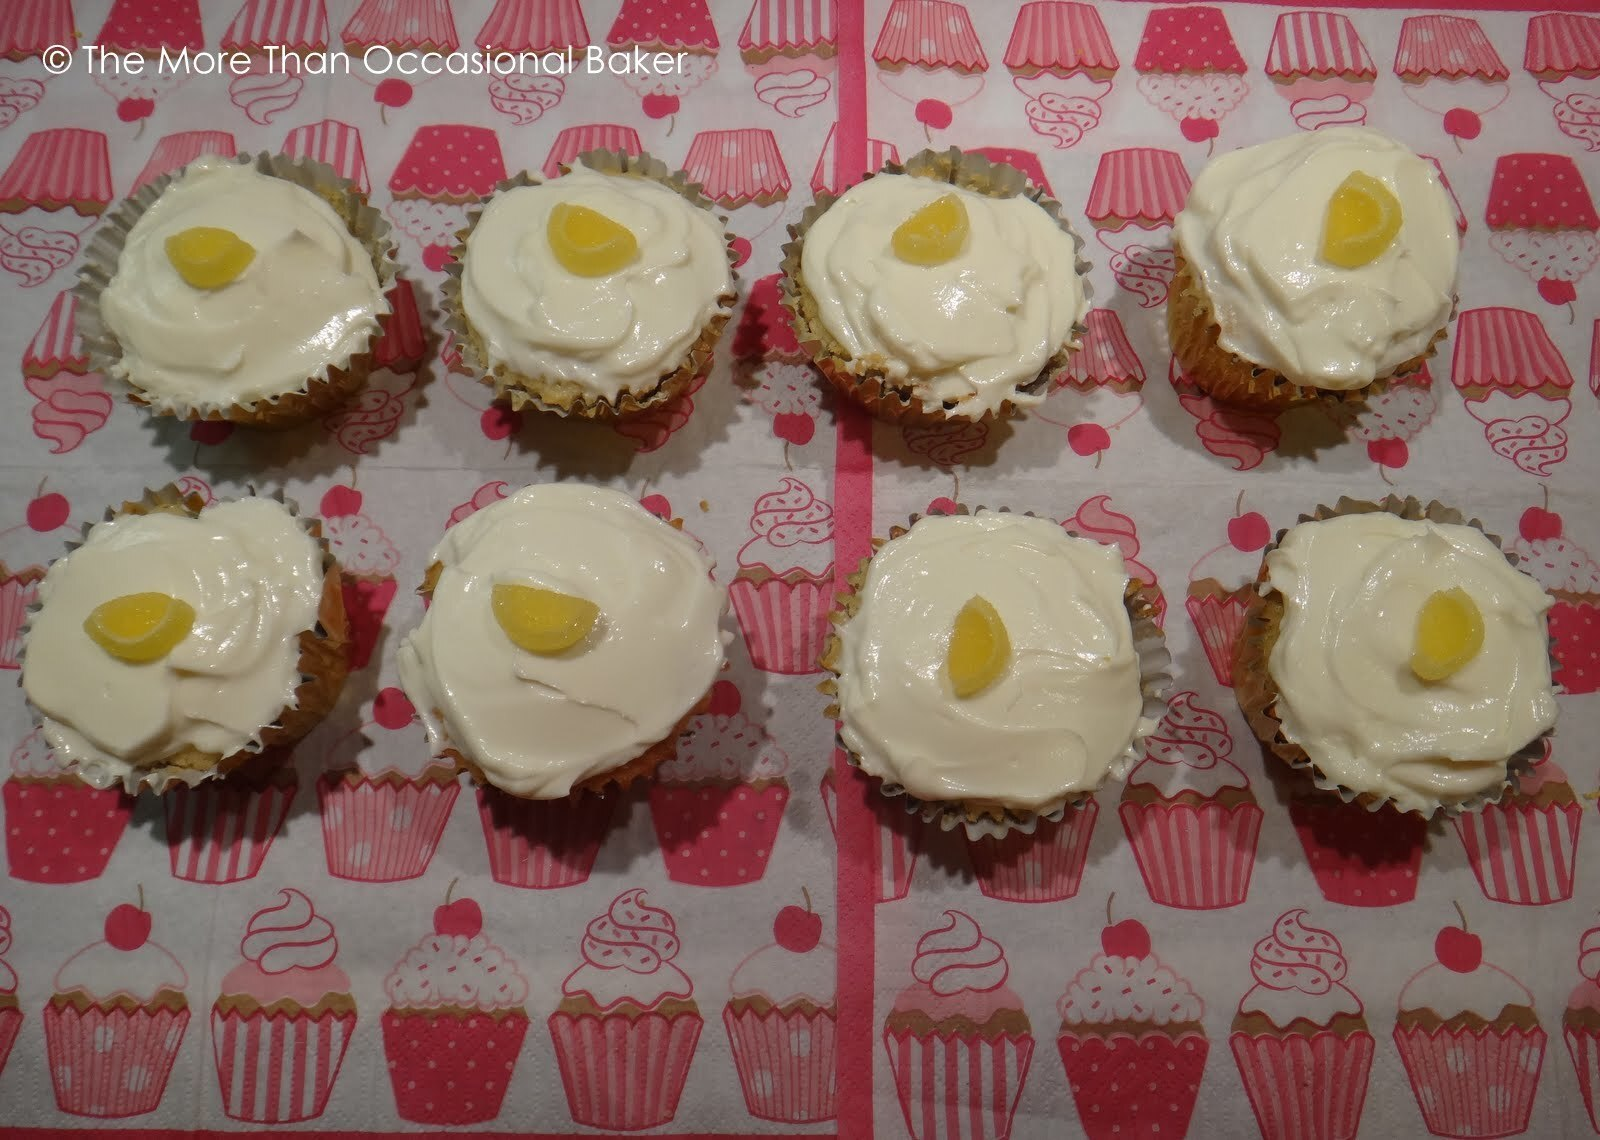 Lemon Cupcakes with Lemon and honey frosting